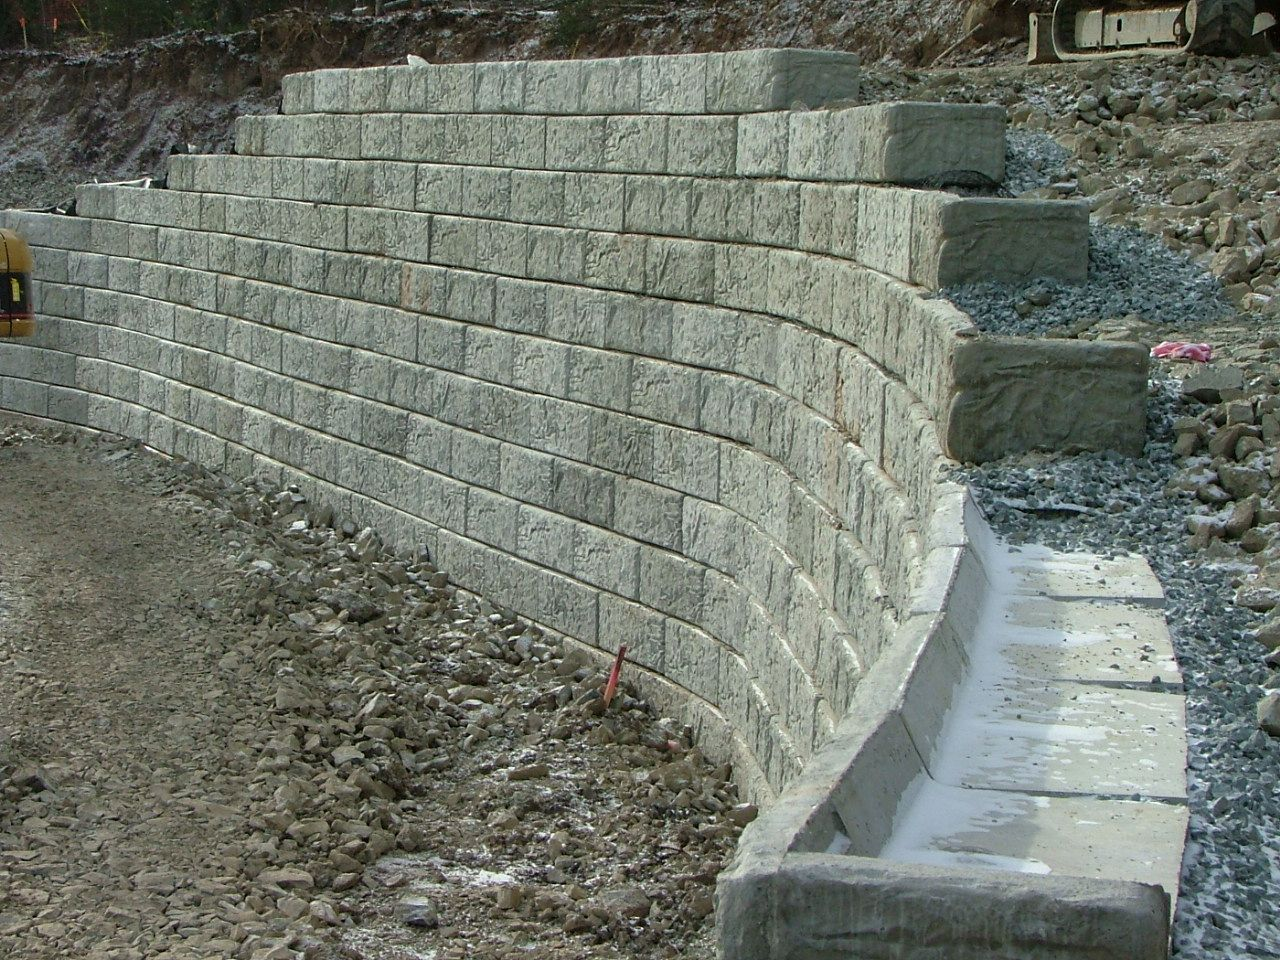 Concrete Block Retaining Wall Design block wall retaining wall The Article Shows Installation Methods And Discusses Advantages Of Each Retaining Wall Material Modern Concrete Block Walls Are Fairly Sophisticated System